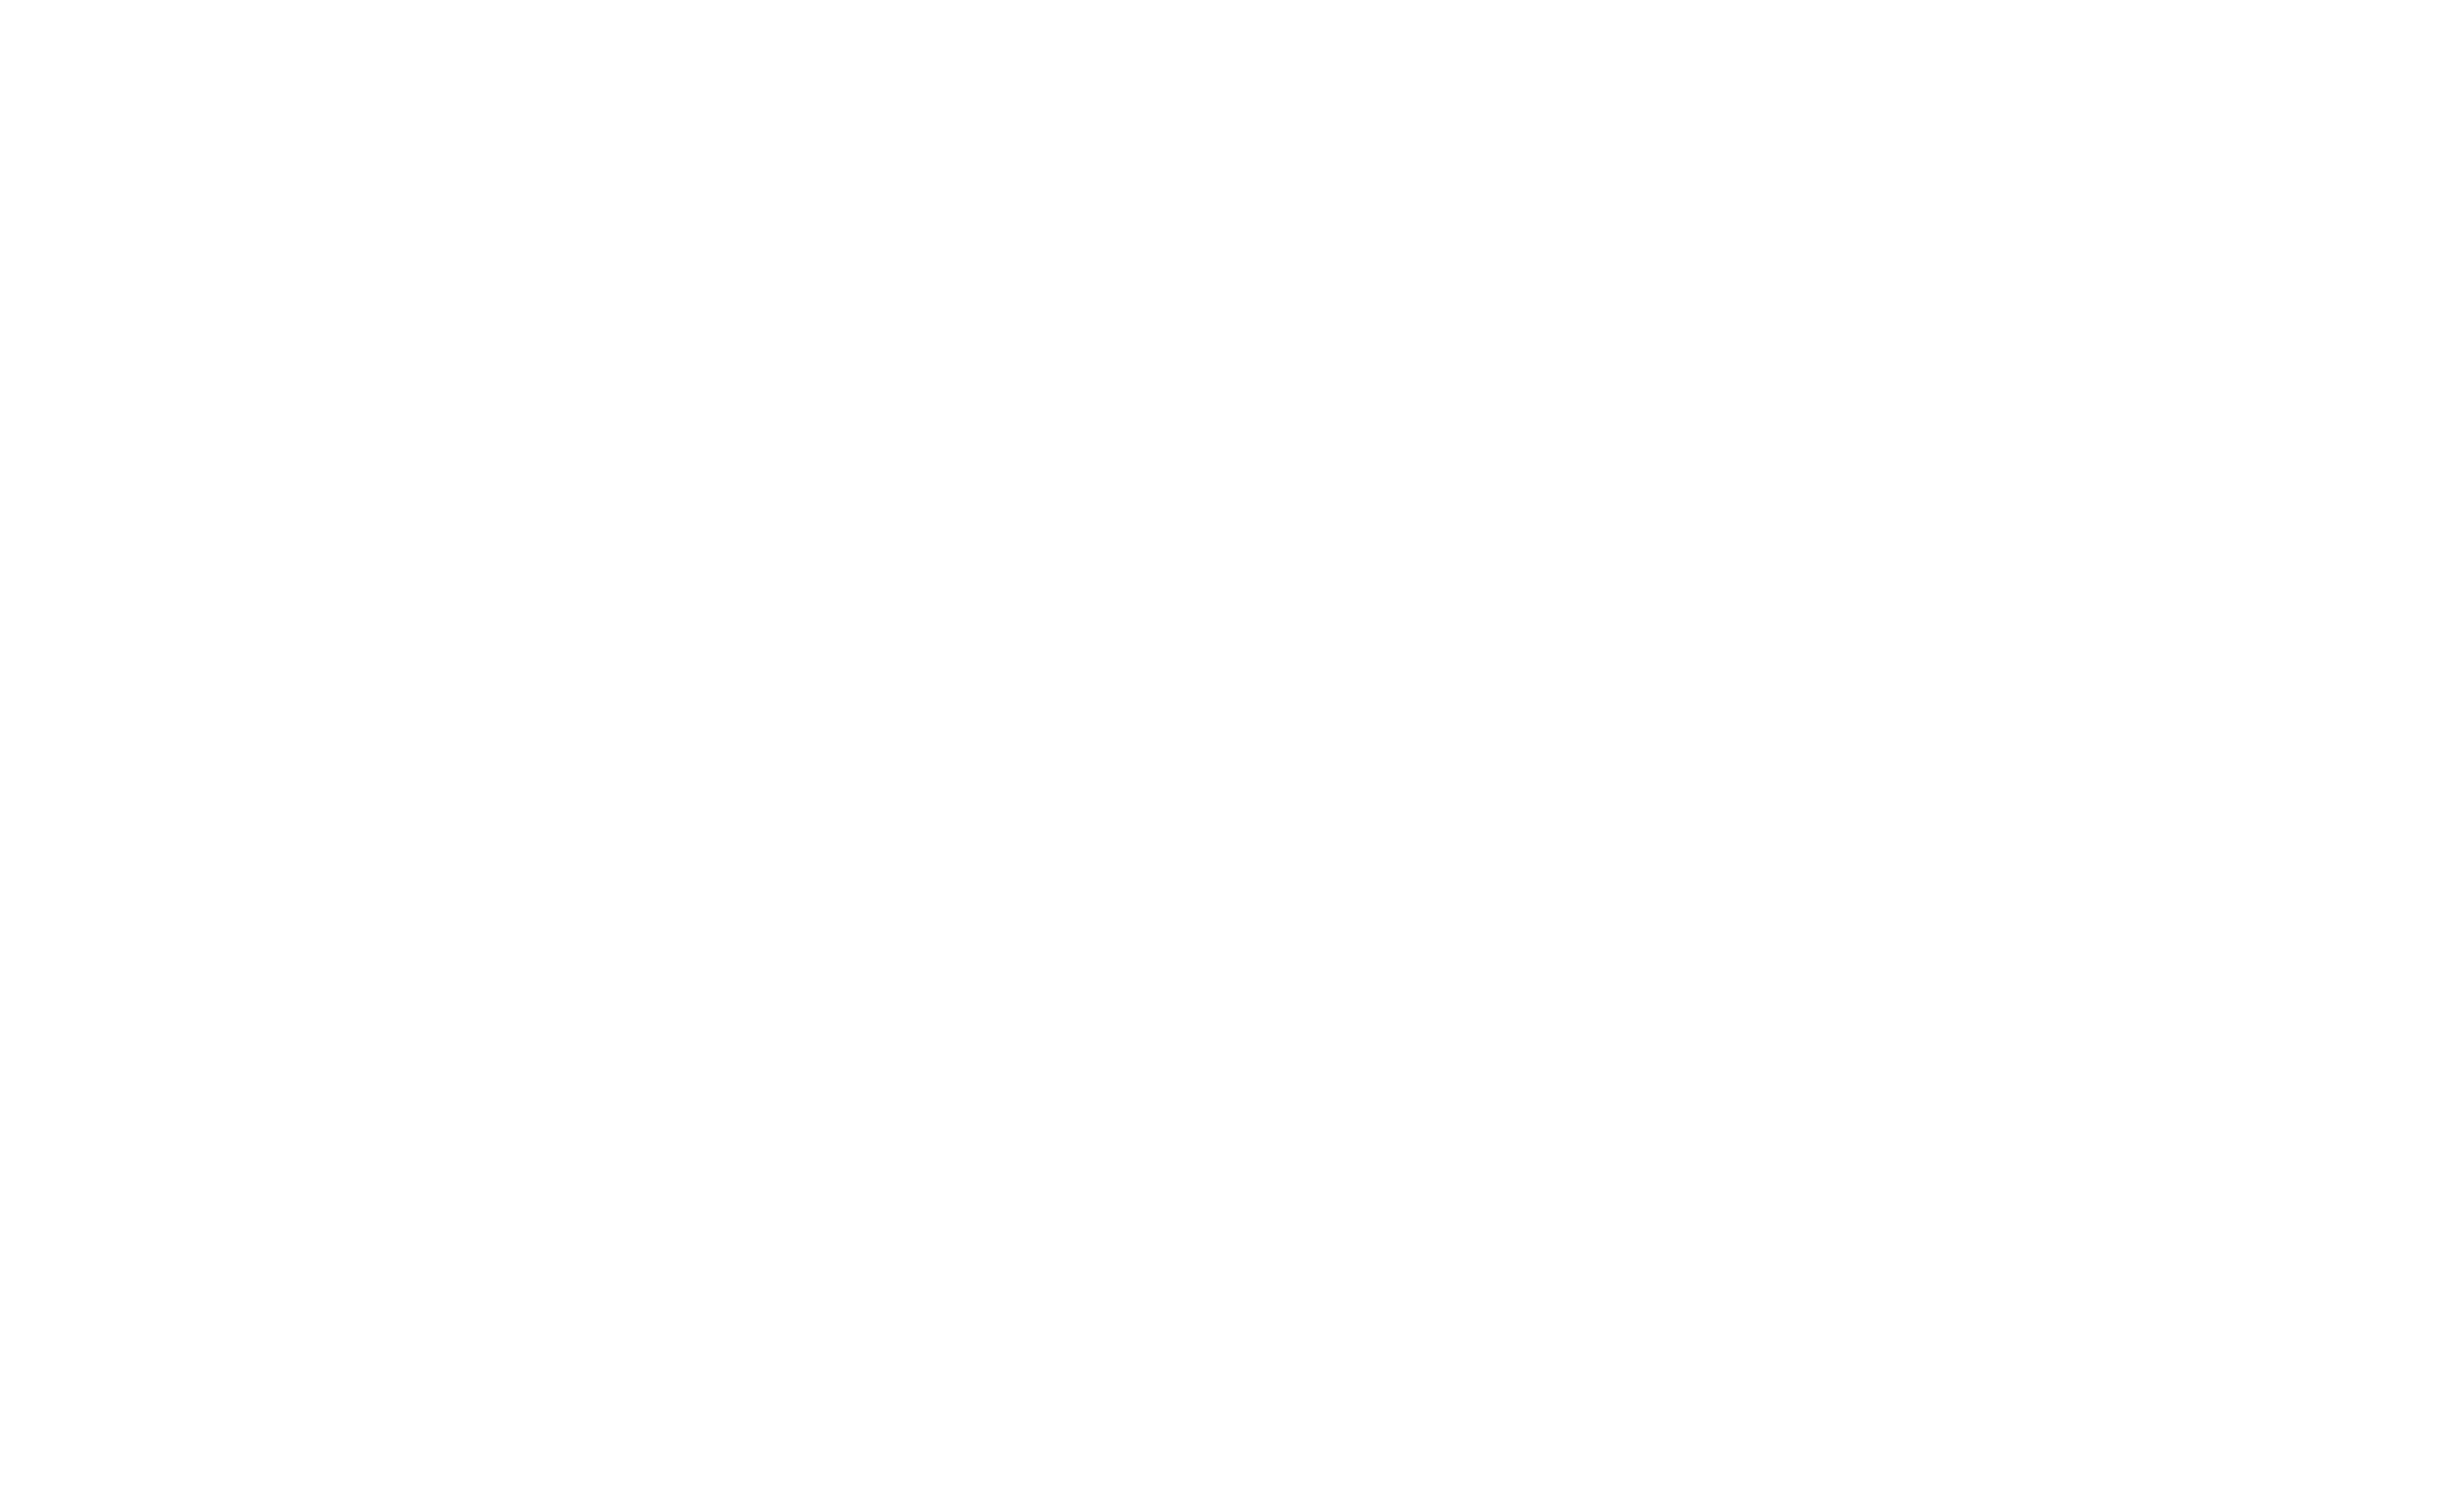 Bourne CiCLE Festival Main Website